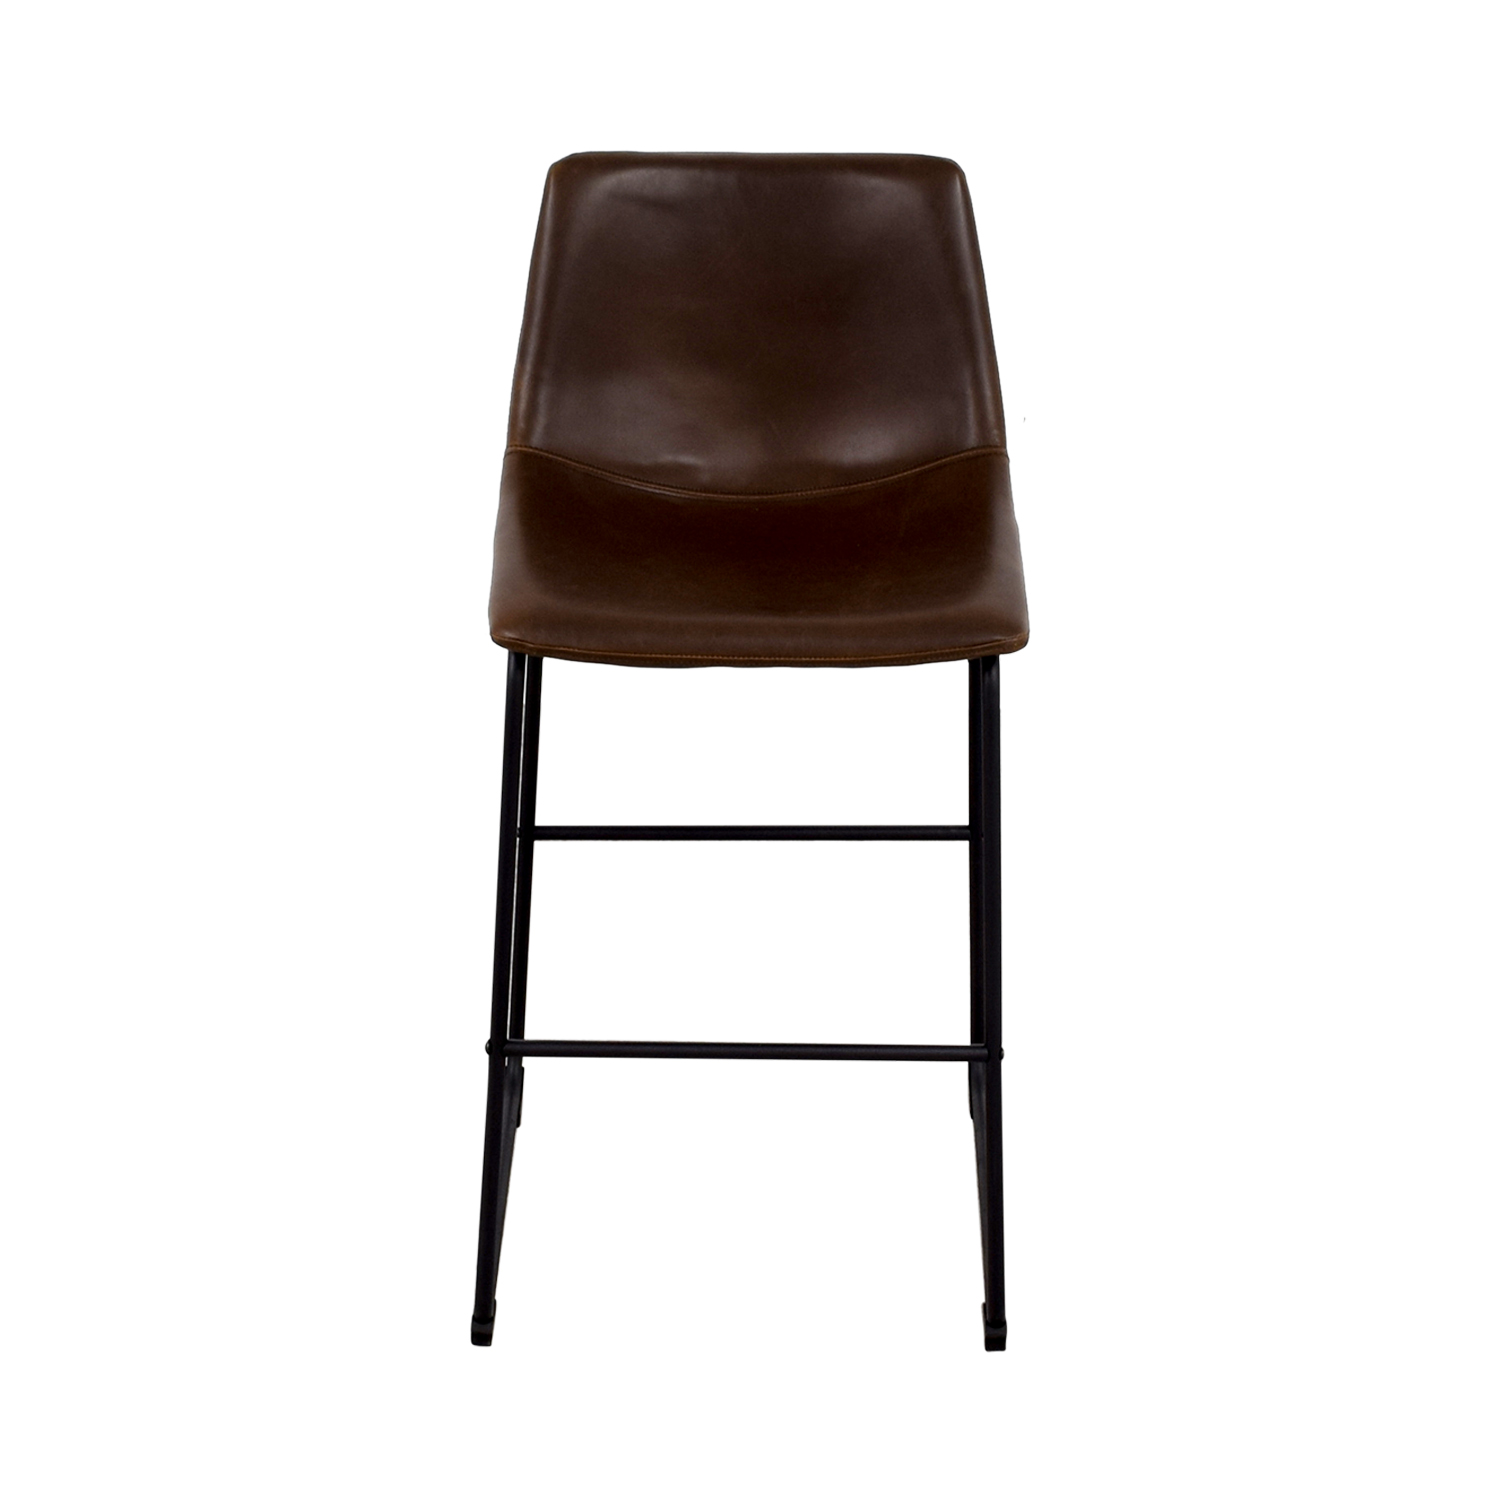 buy Coaster Coaster Retro Brown Leatherette Counter Height Chair online